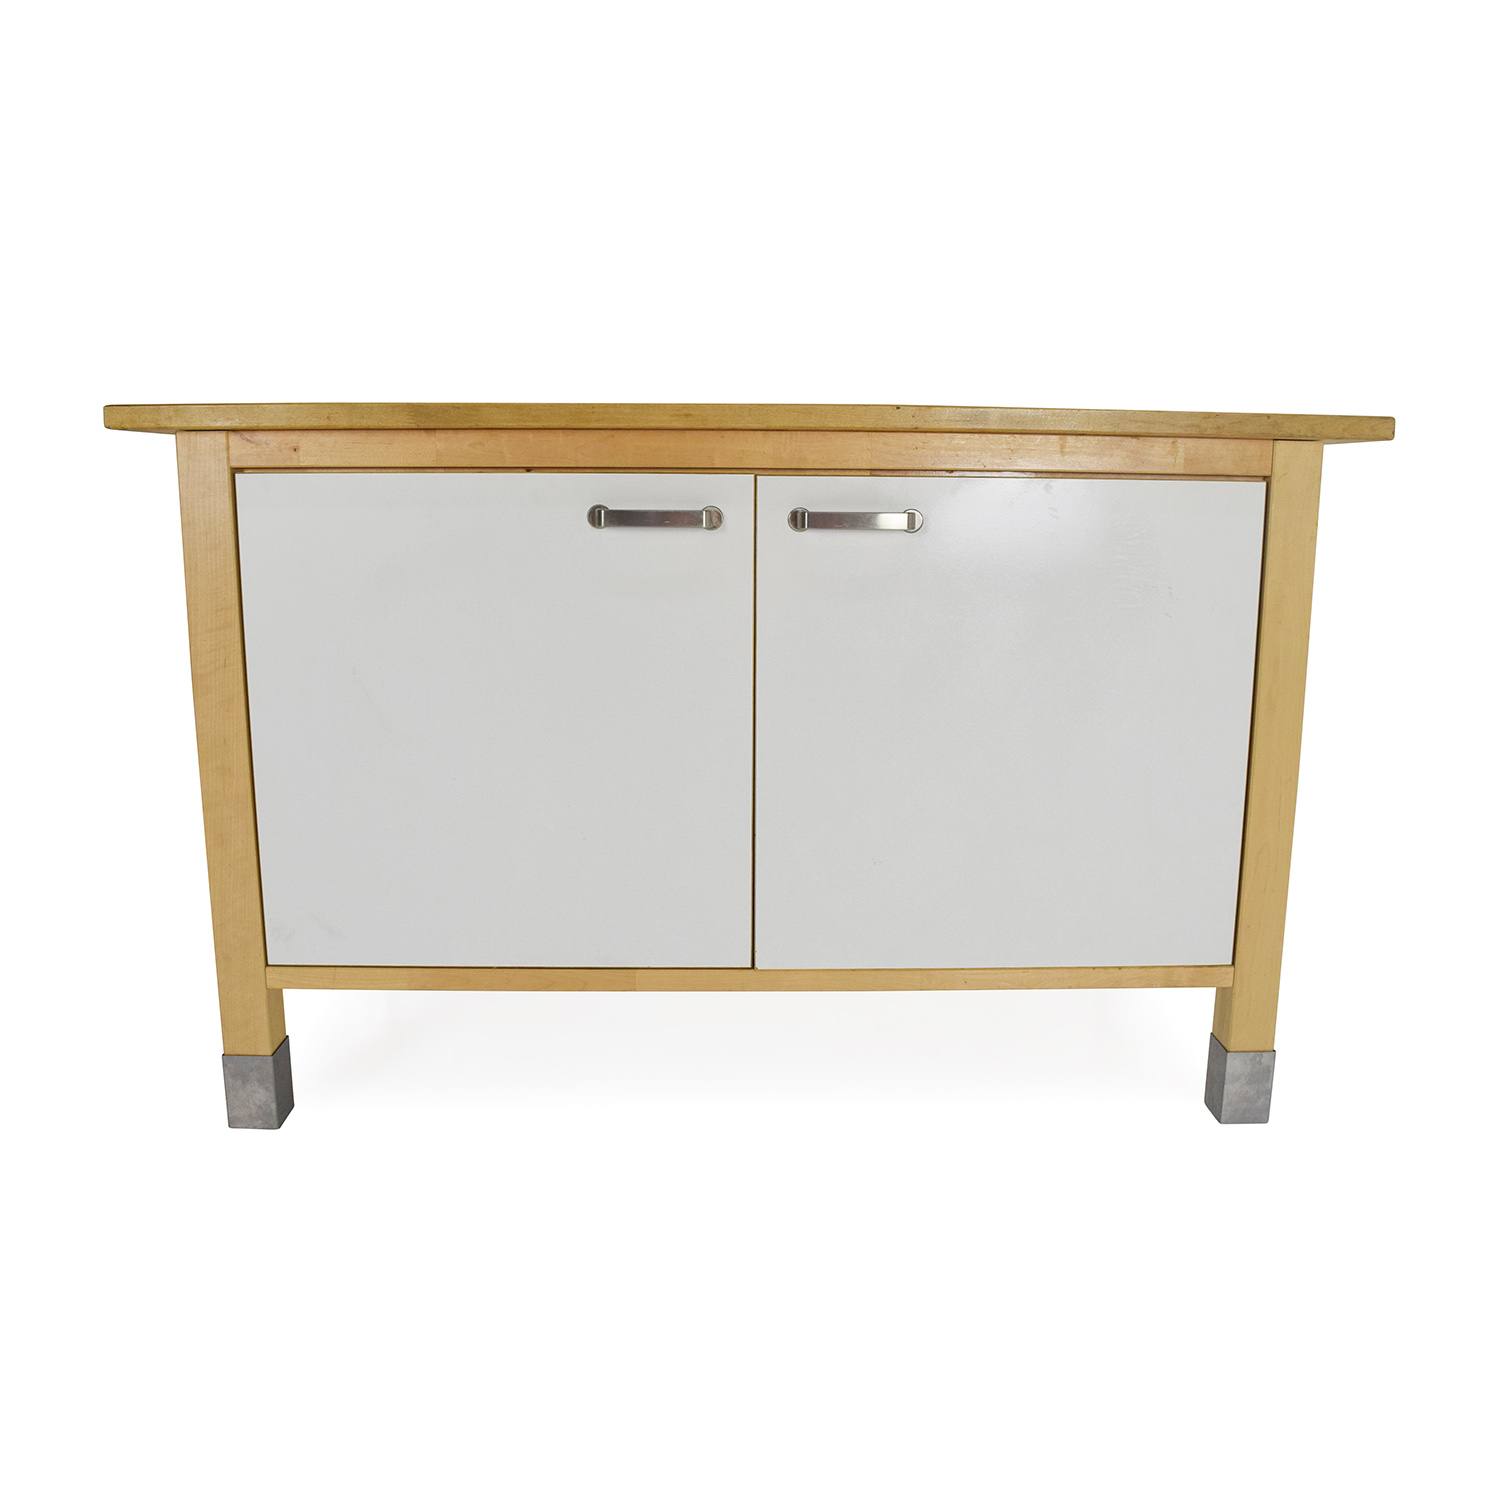 buy Kitchen Block Cabinet Table IKEA Cabinets & Sideboards